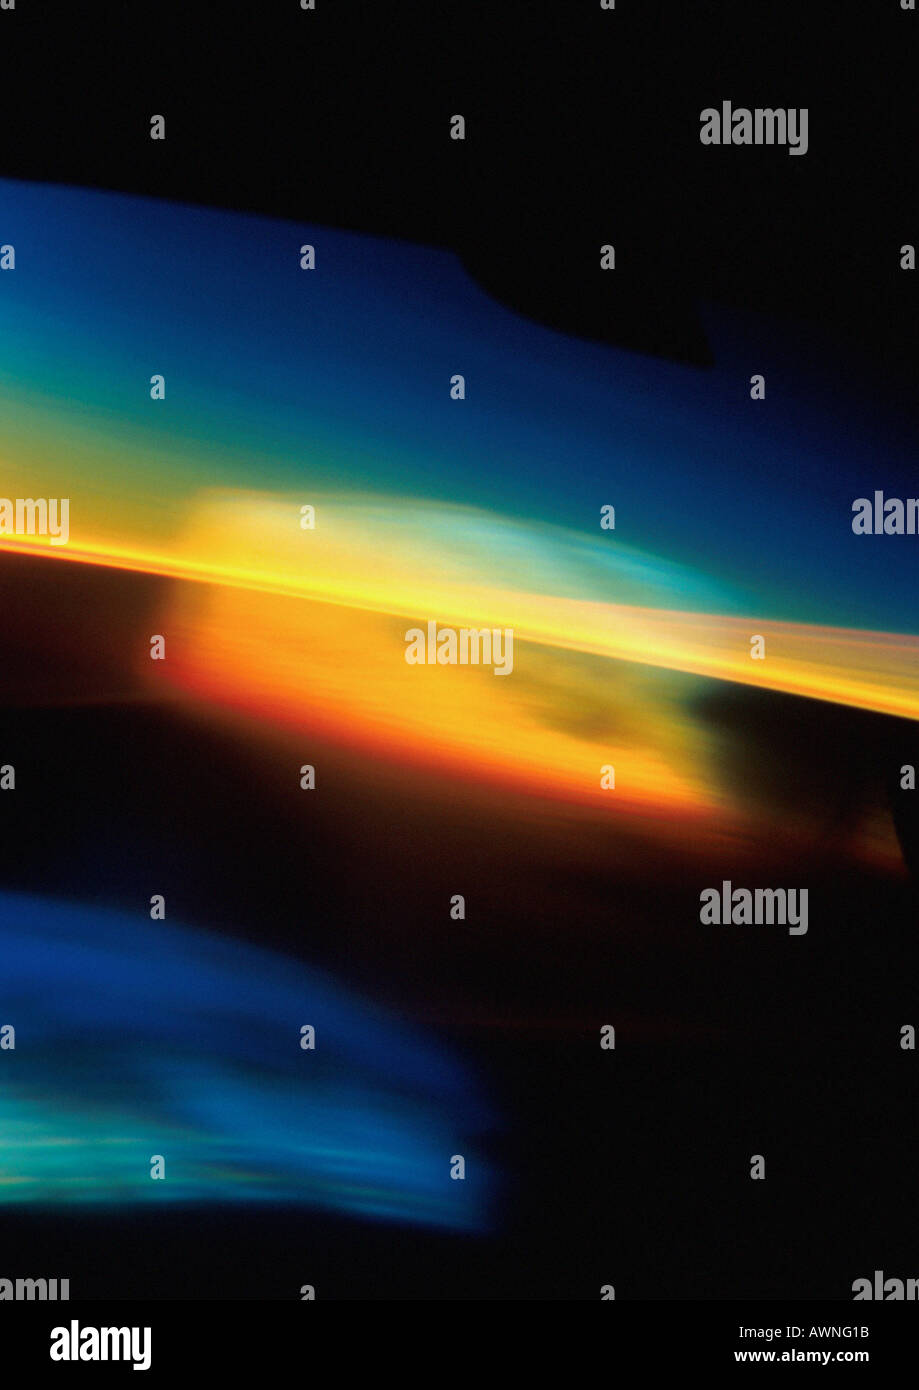 Light effect, reds, yellows and blues. - Stock Image